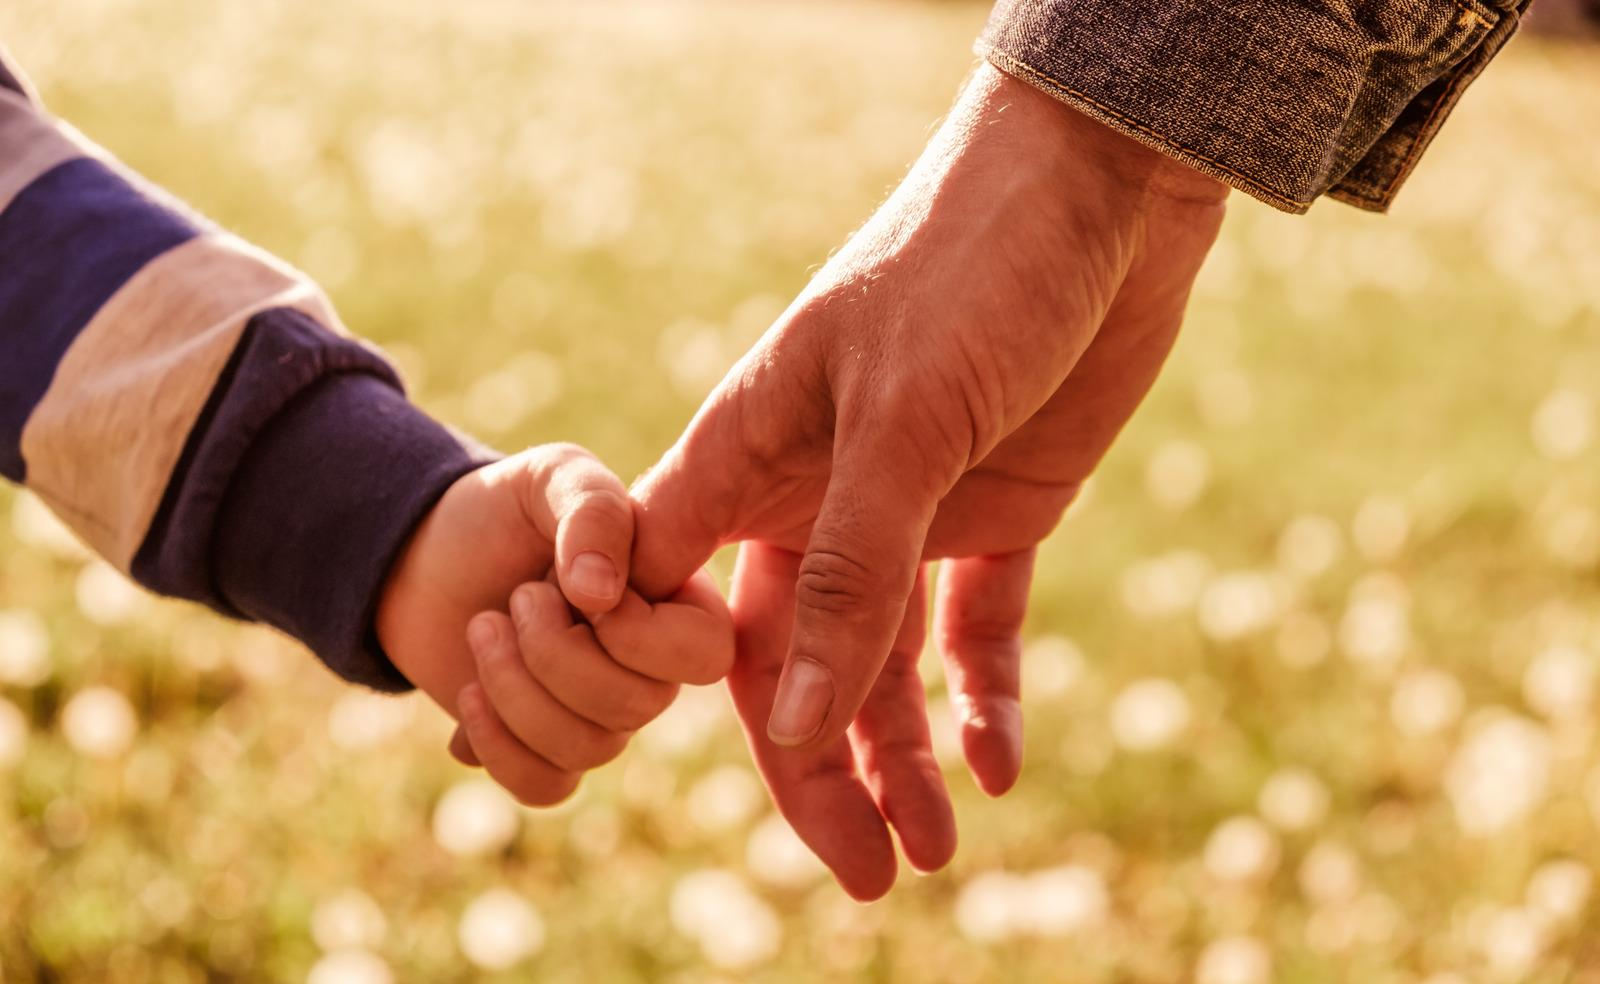 How early attachments can impact future relationships